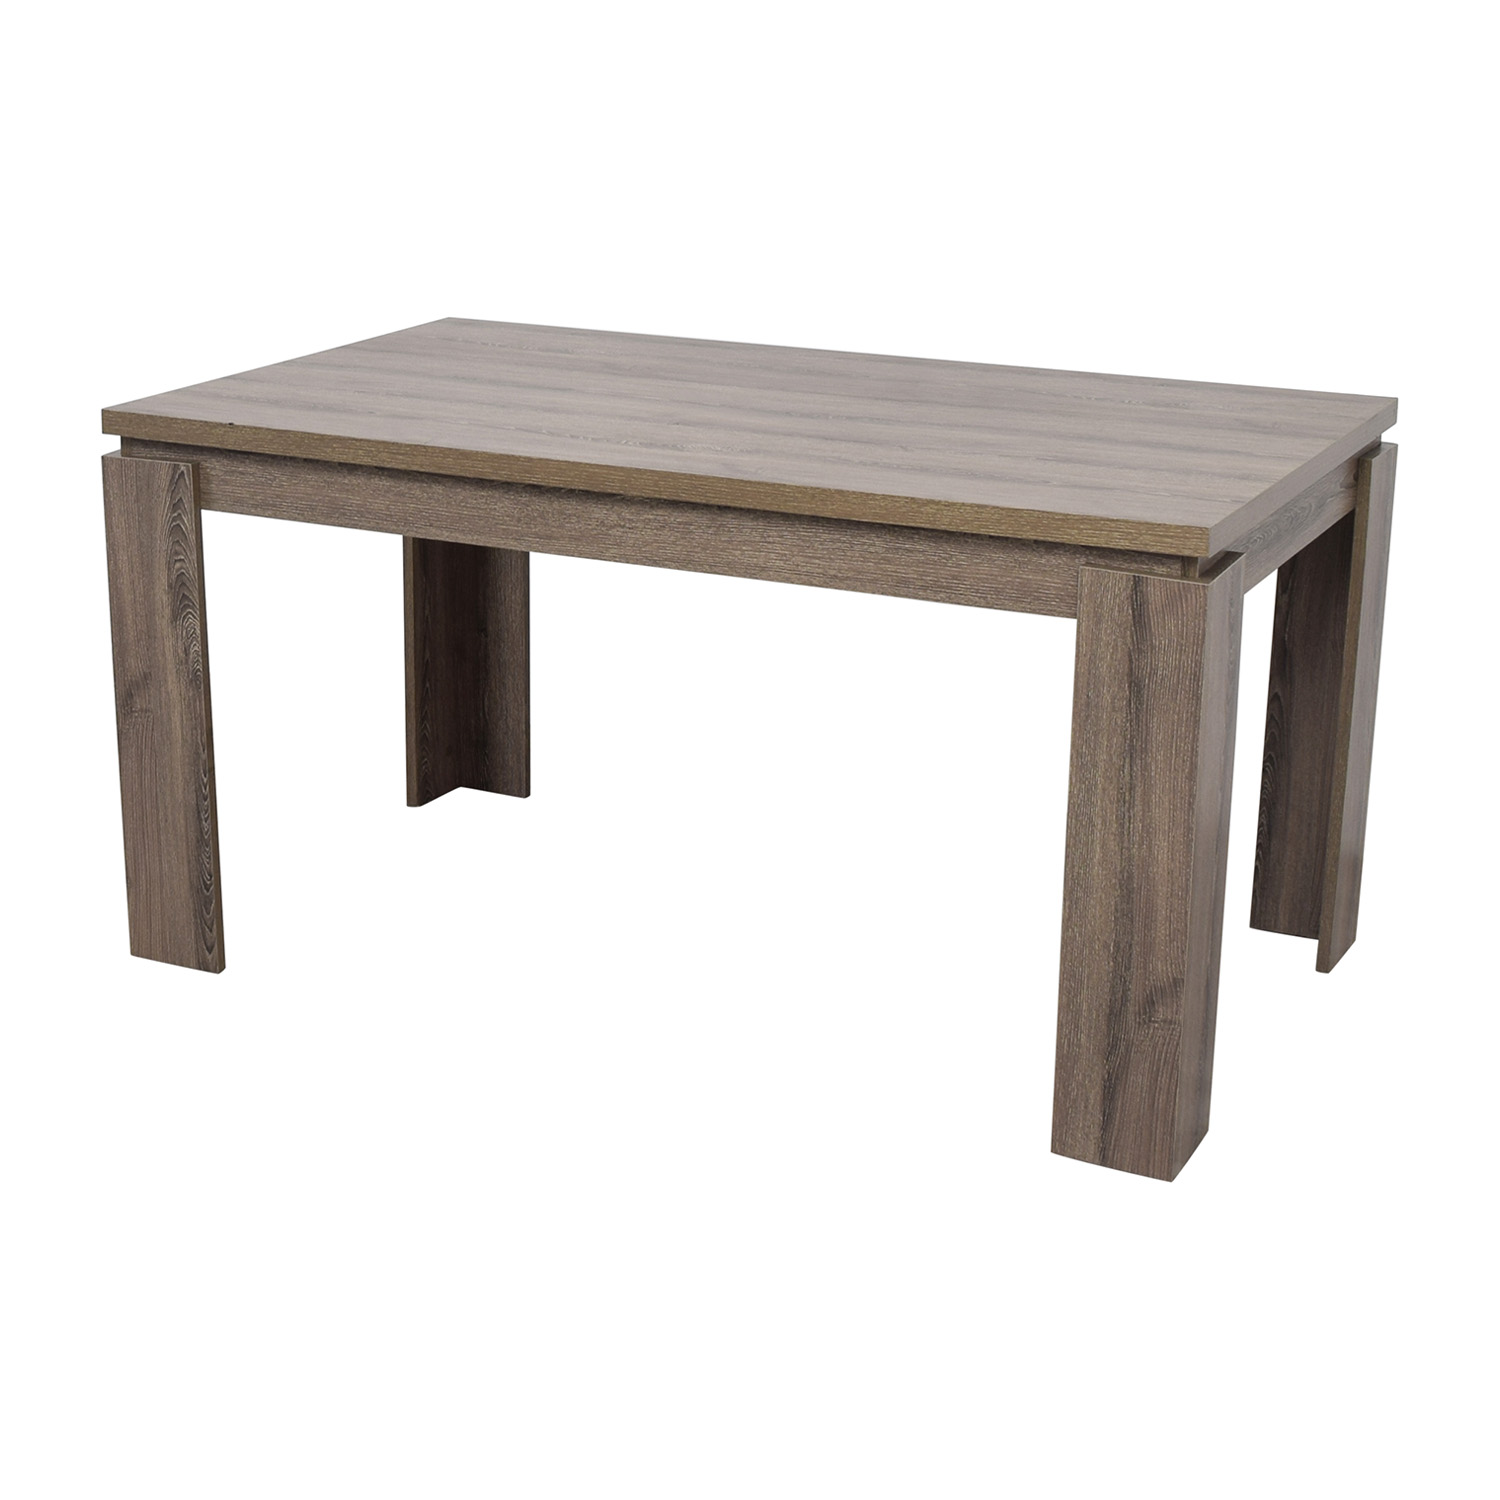 WilliamBrugman WilliamBrugman Rustic Grey Table Tables